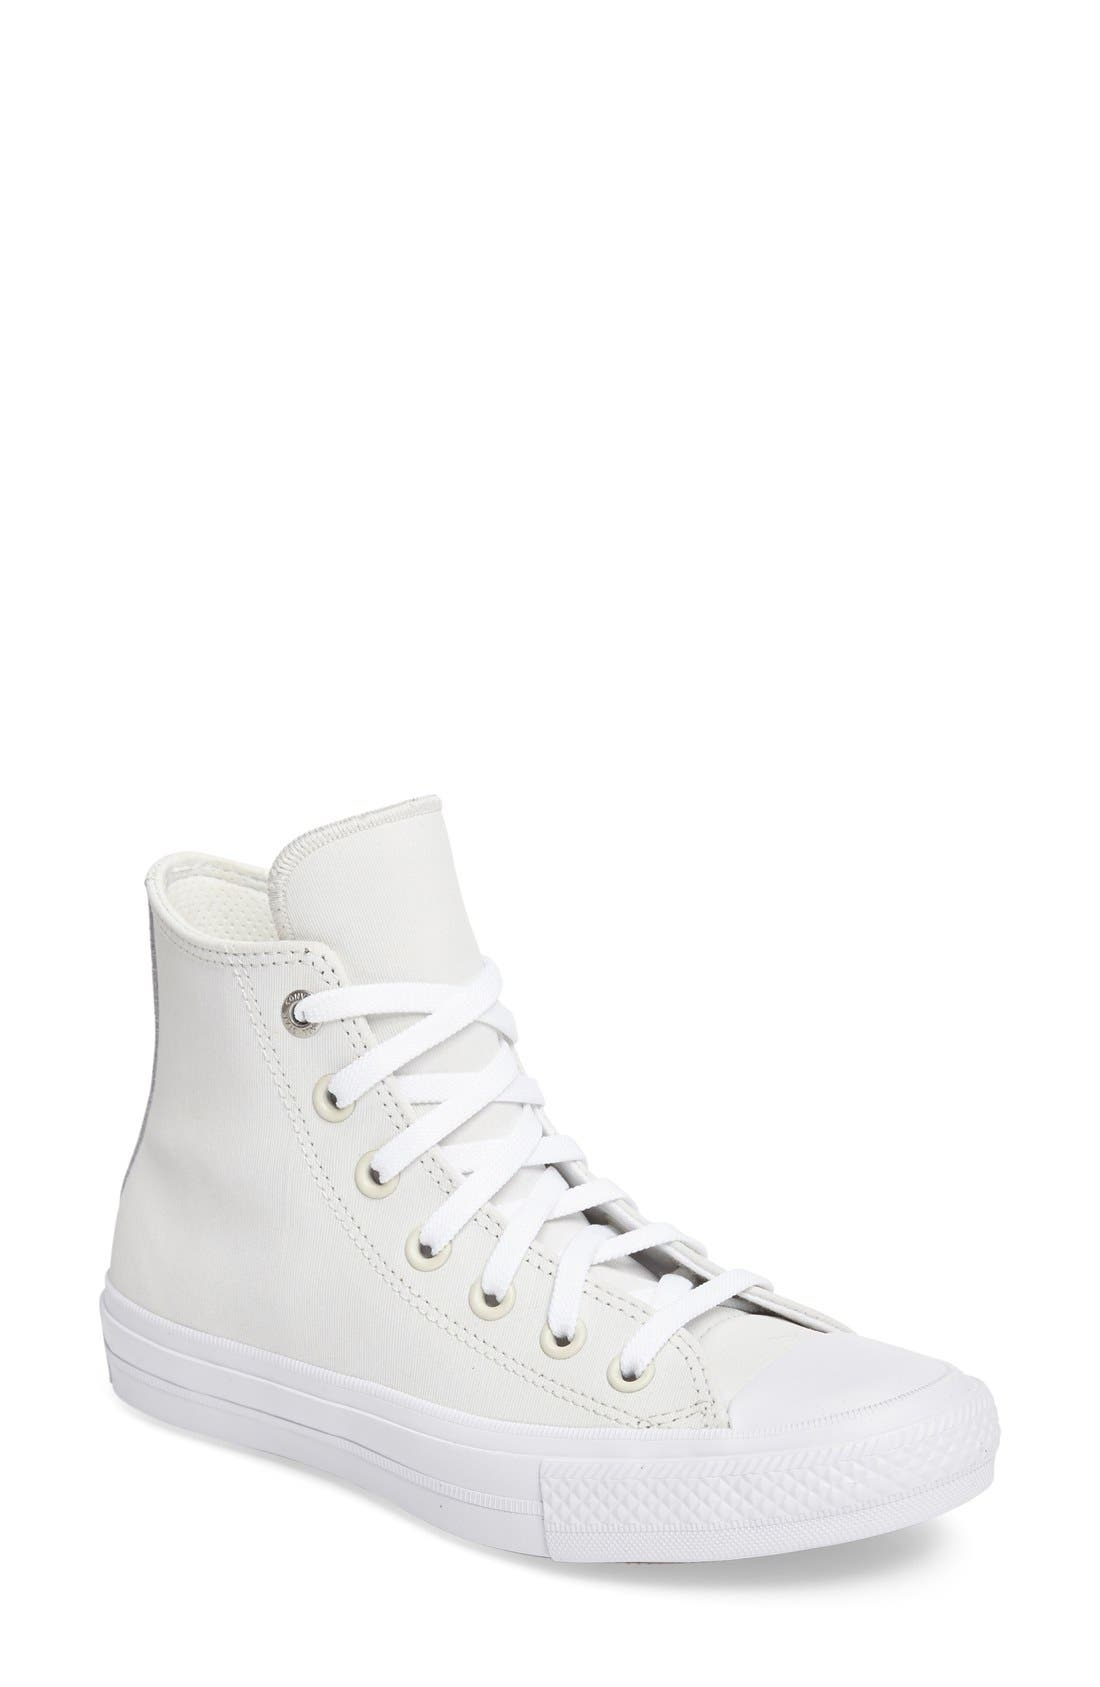 Alternate Image 1 Selected - Converse Chuck Taylor® All Star® II Two Tone High Top Sneaker (Women)